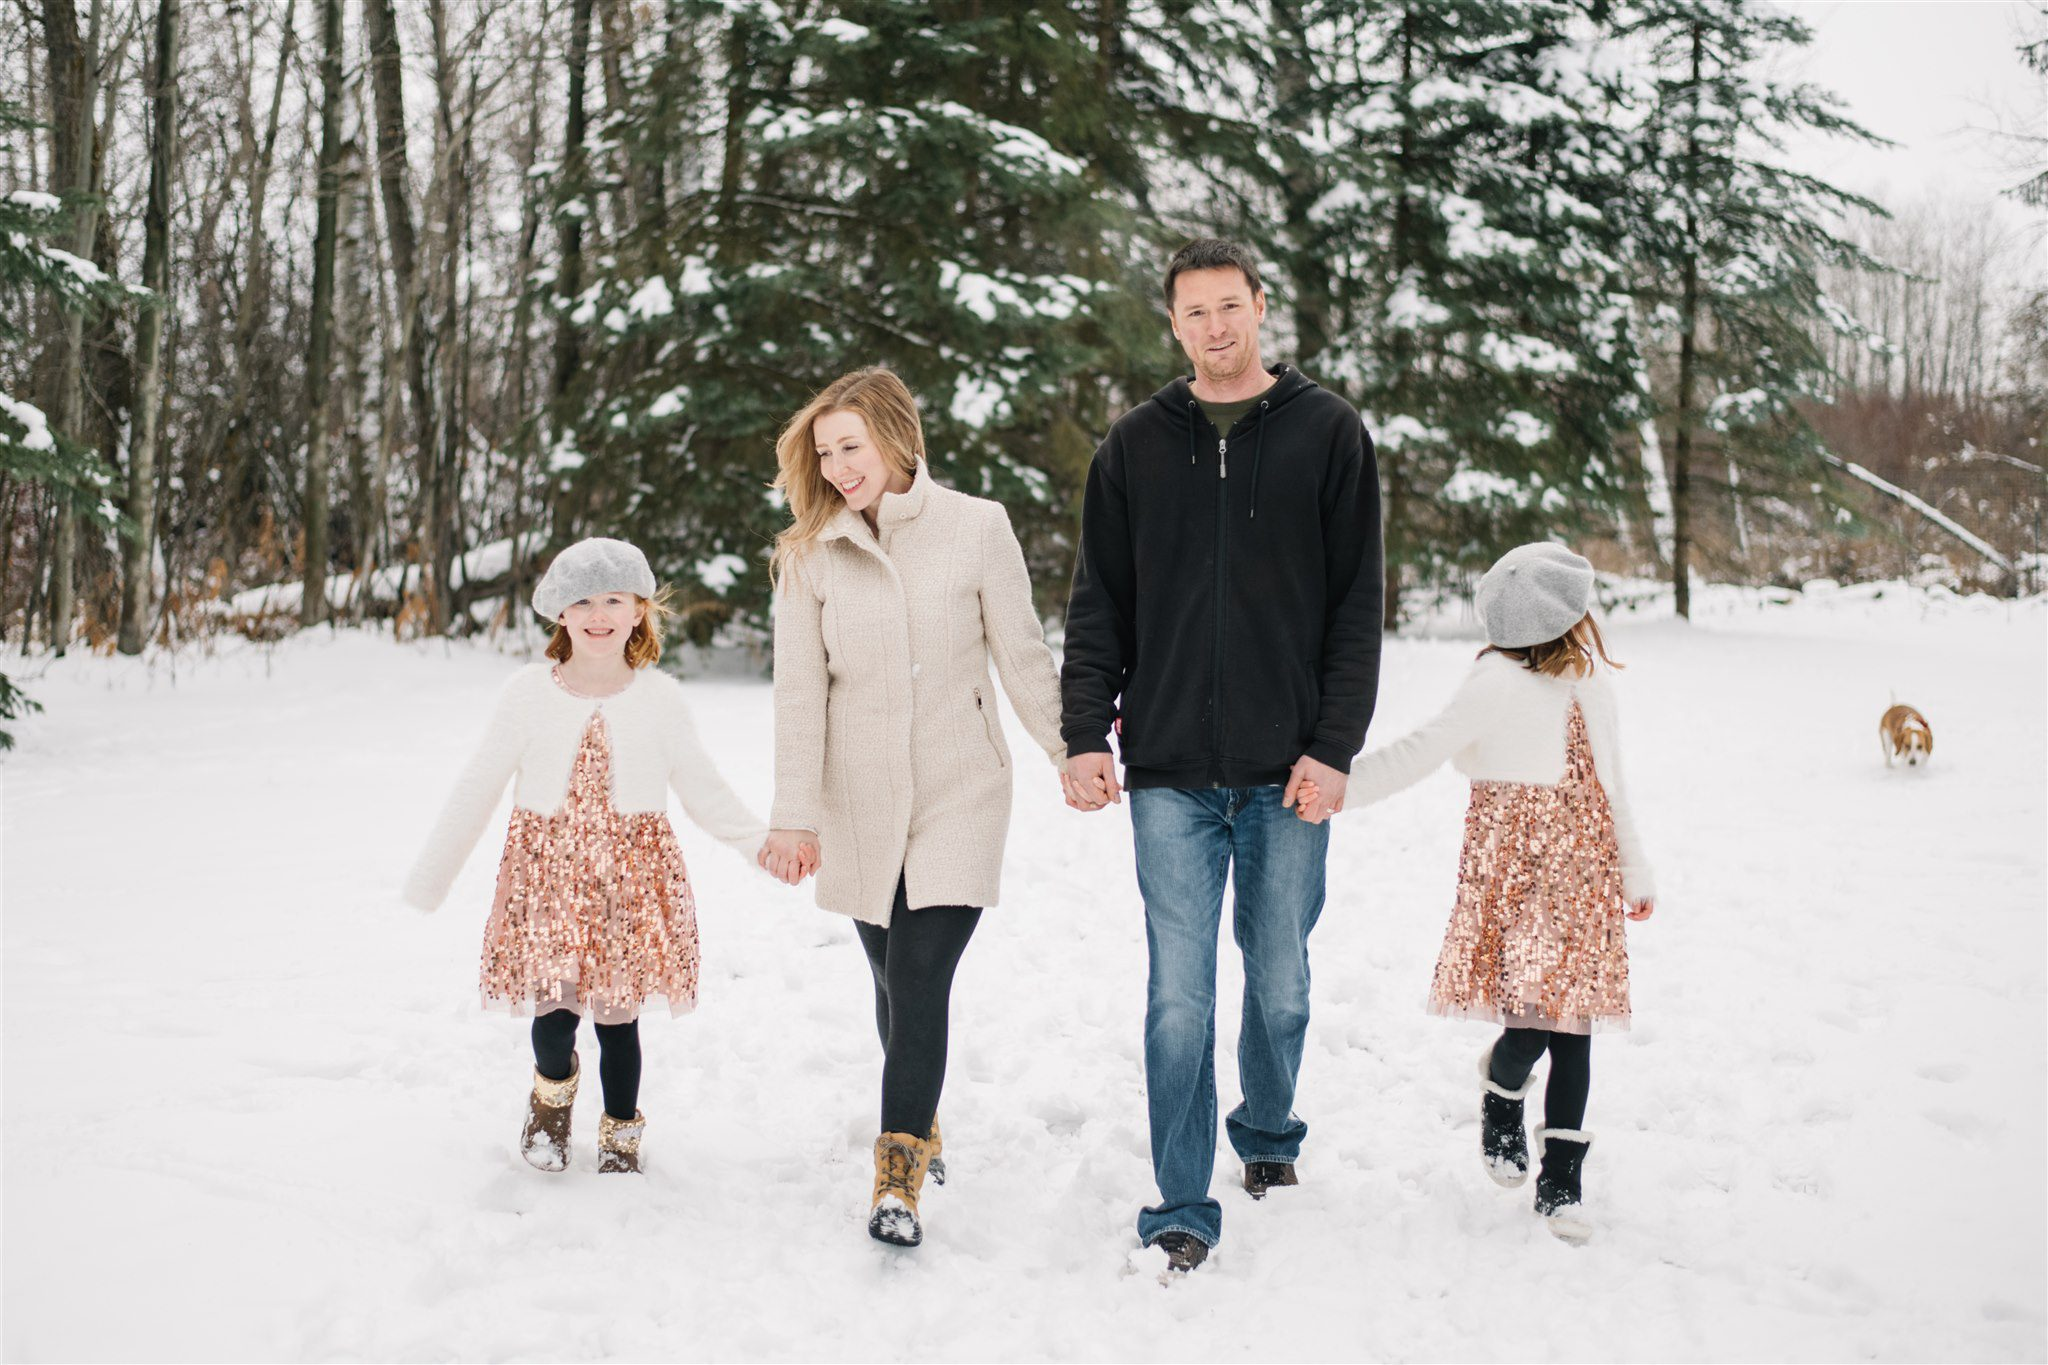 Family walks in the snow